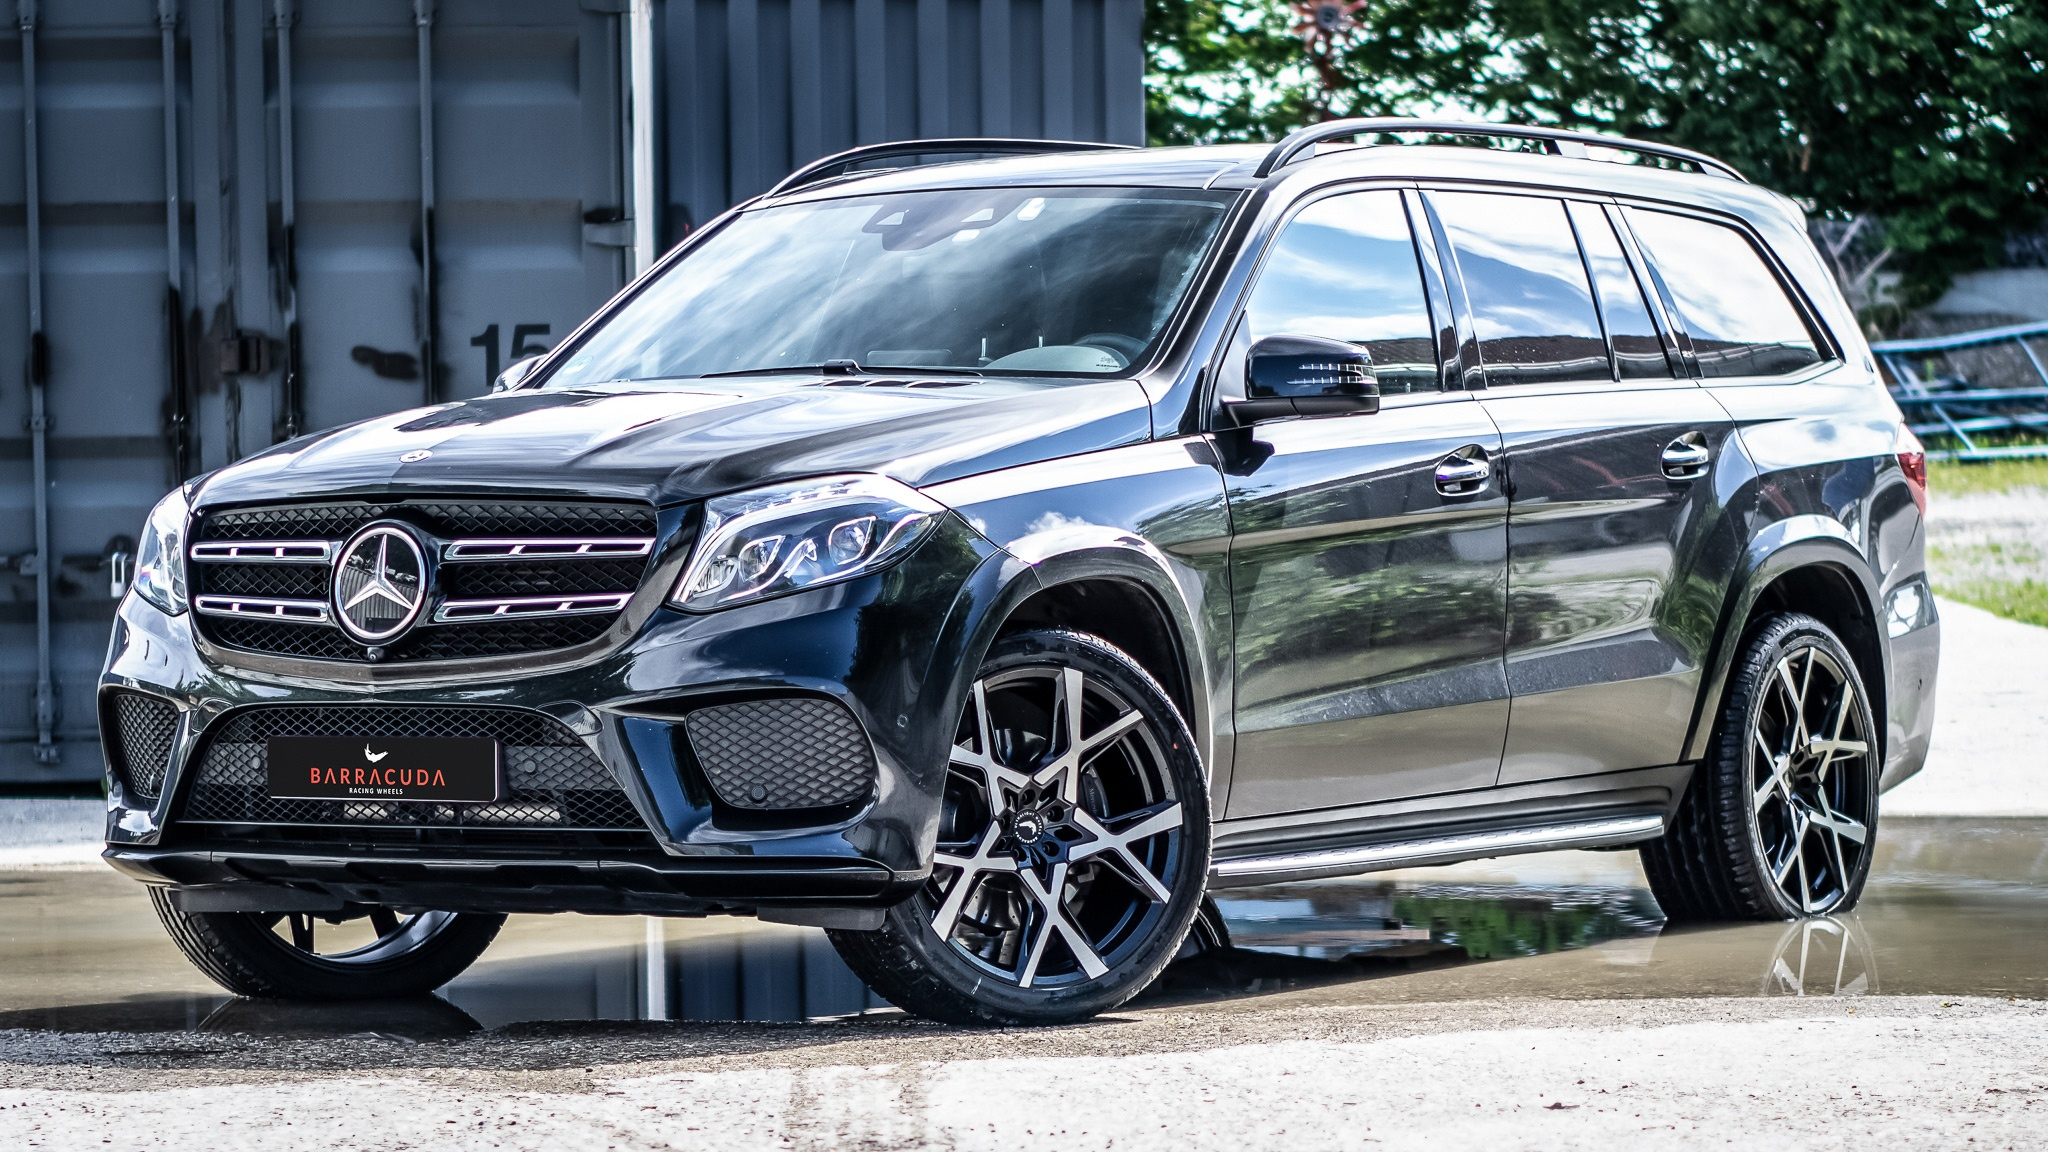 Barracuda meets HS Motorsport – Project X on the lowered Mercedes GLS